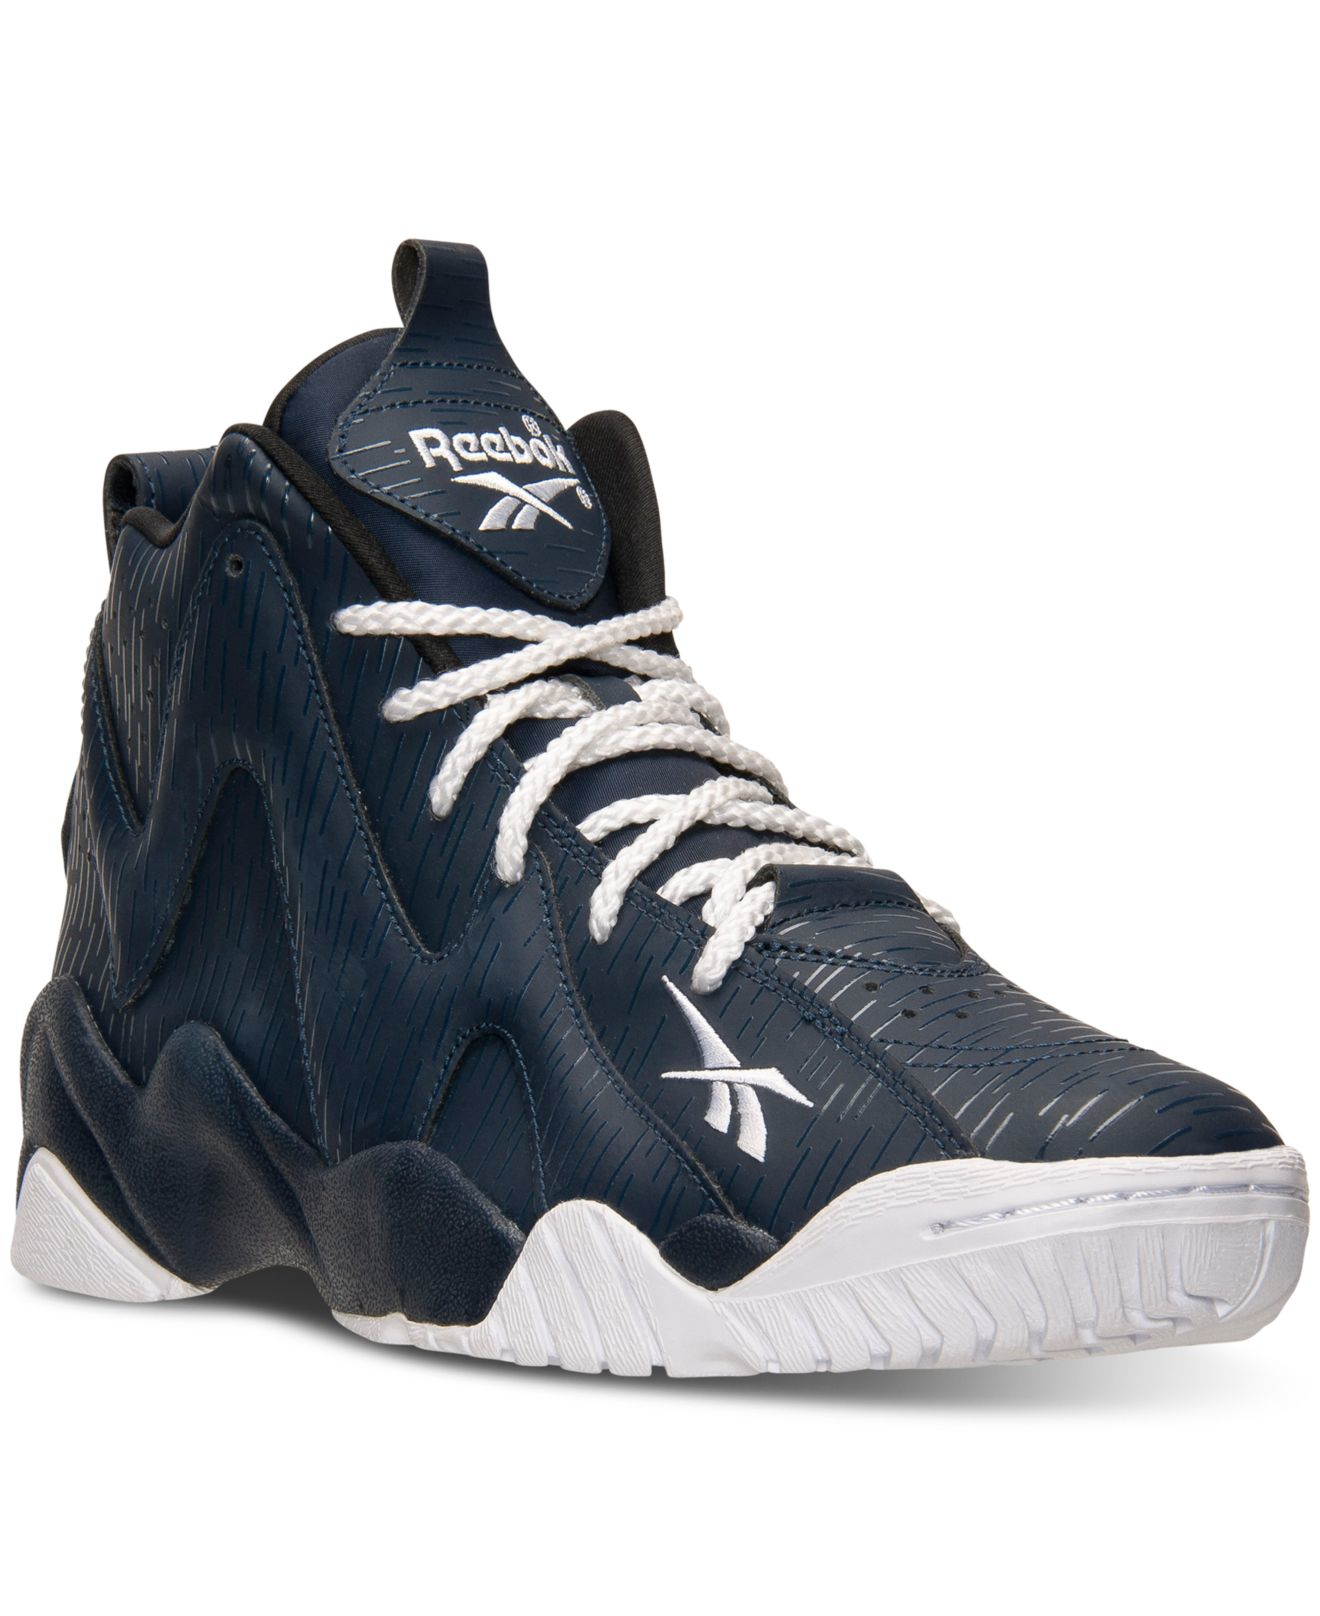 889cfaa440ae6c Lyst - Reebok Men s Kamikaze Ii Mid Basketball Sneakers From Finish ...